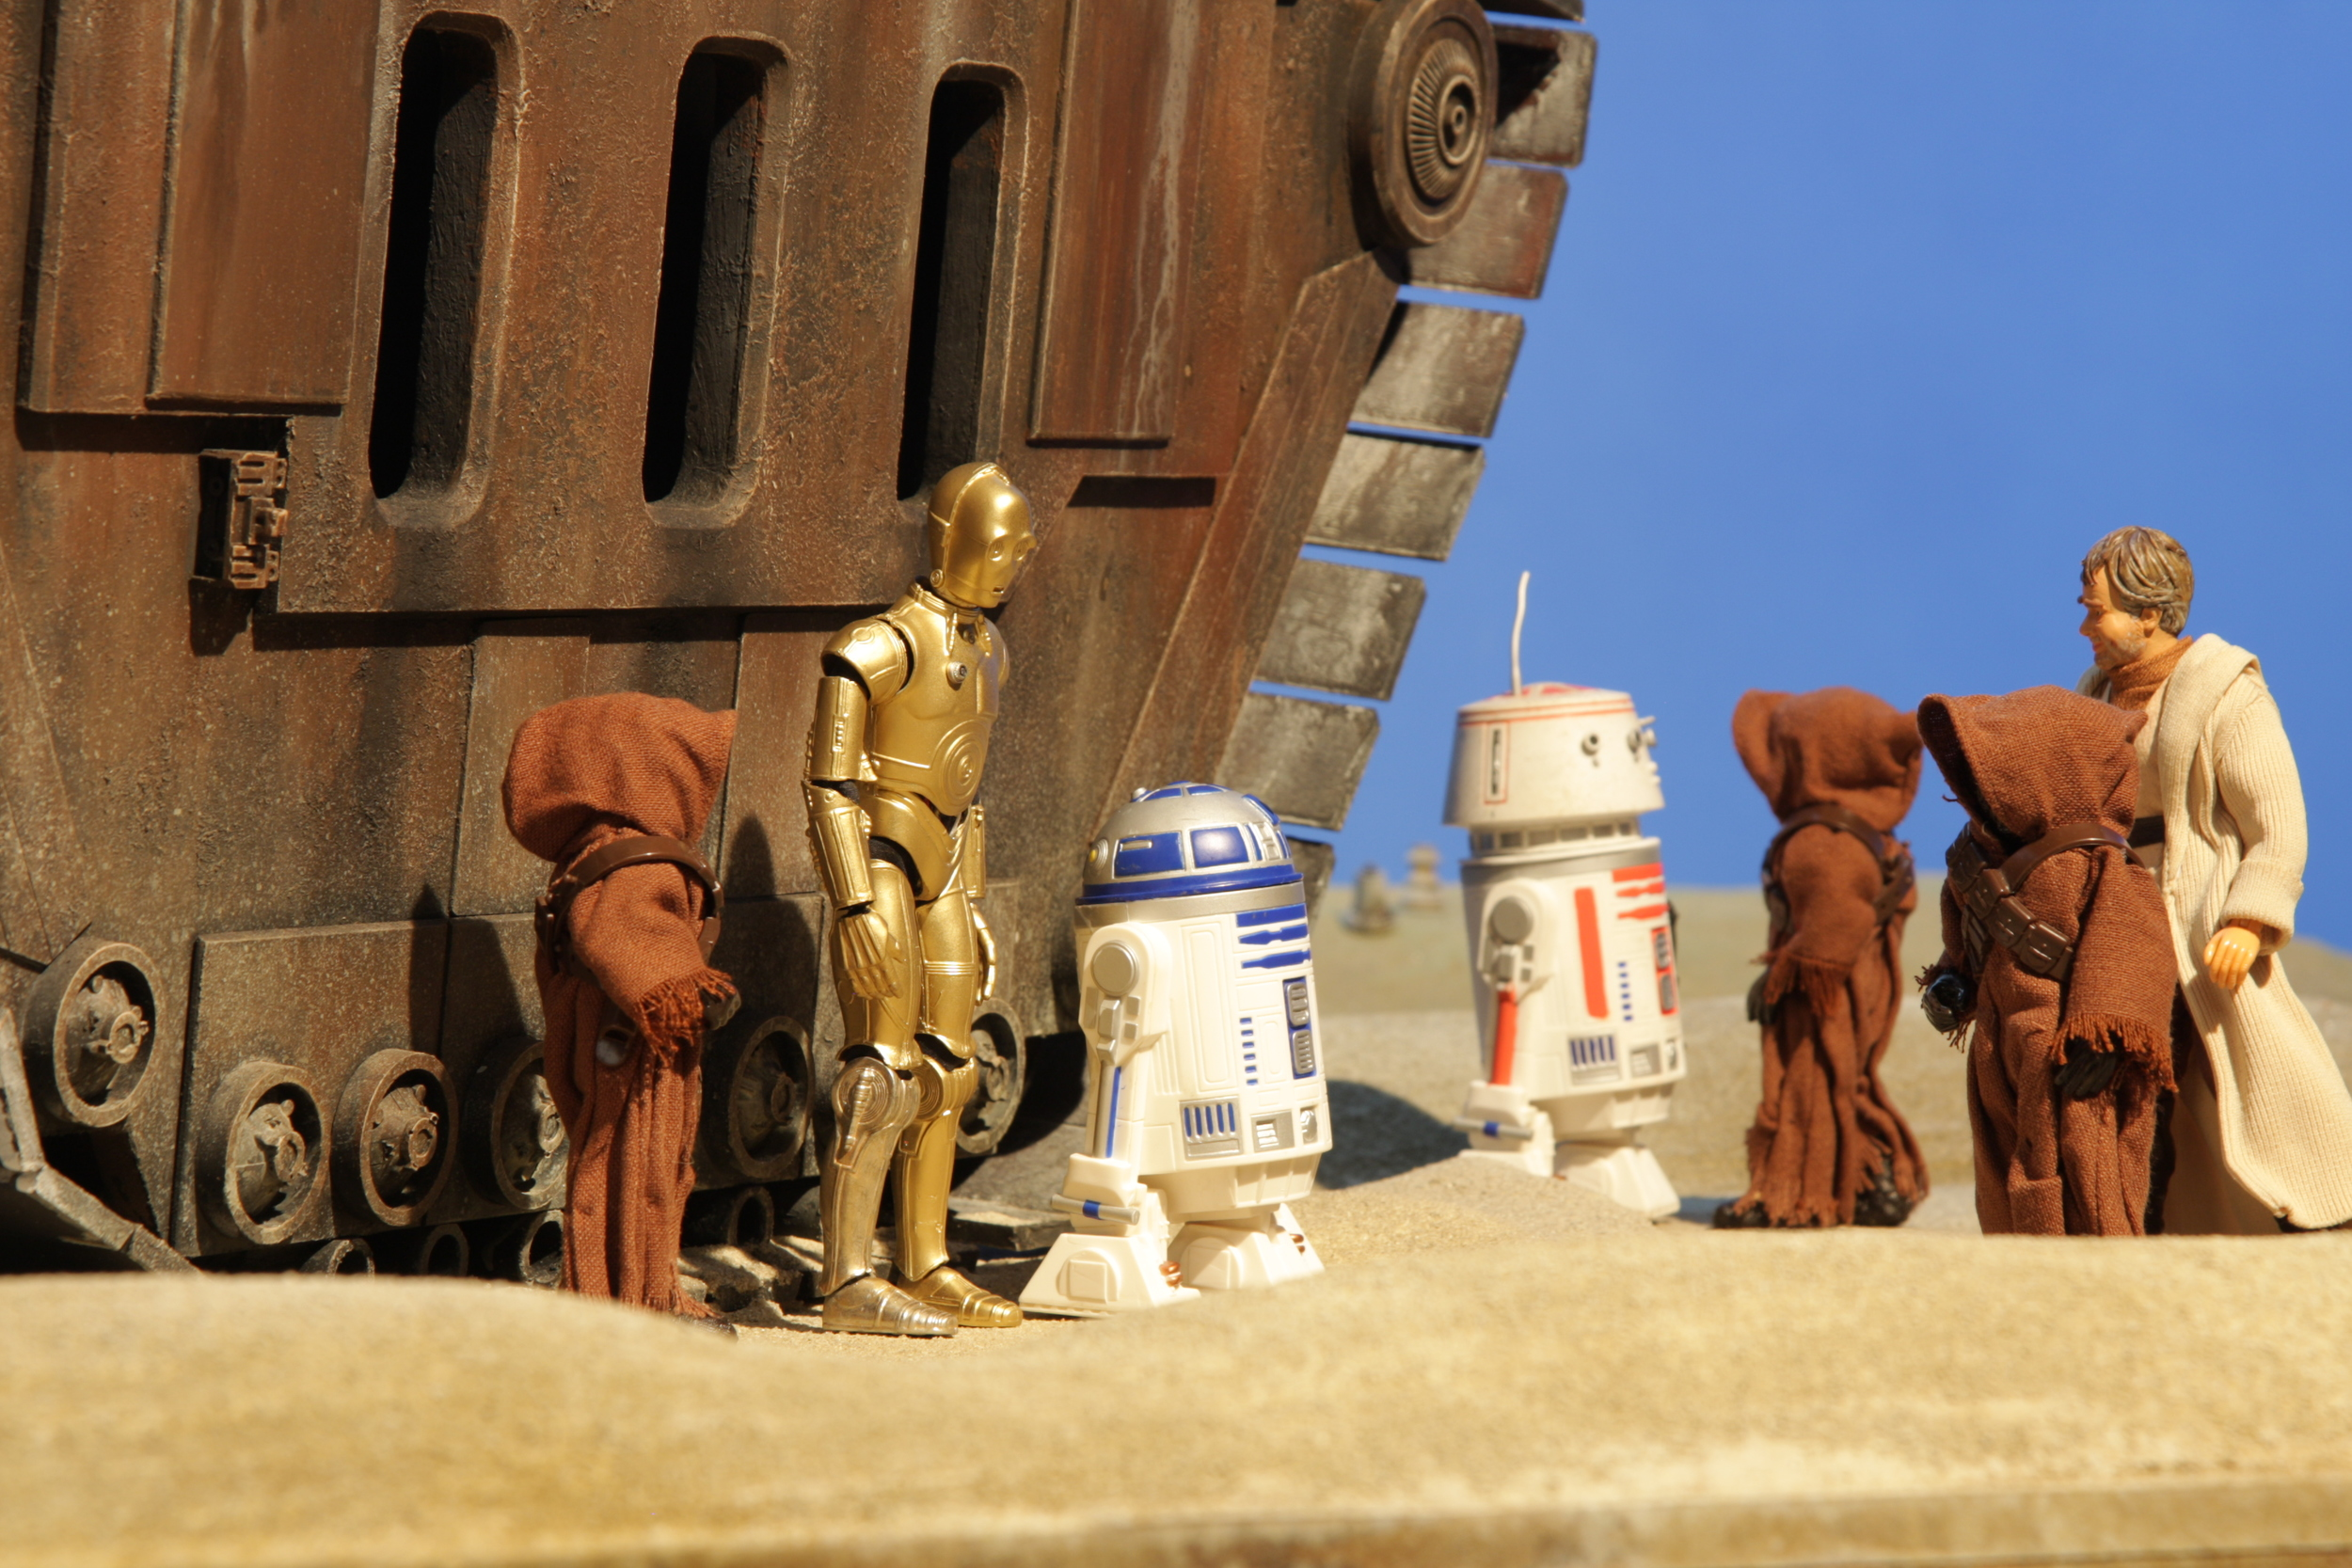 Robot Chicken Star Wars 2 Image 25.jpg